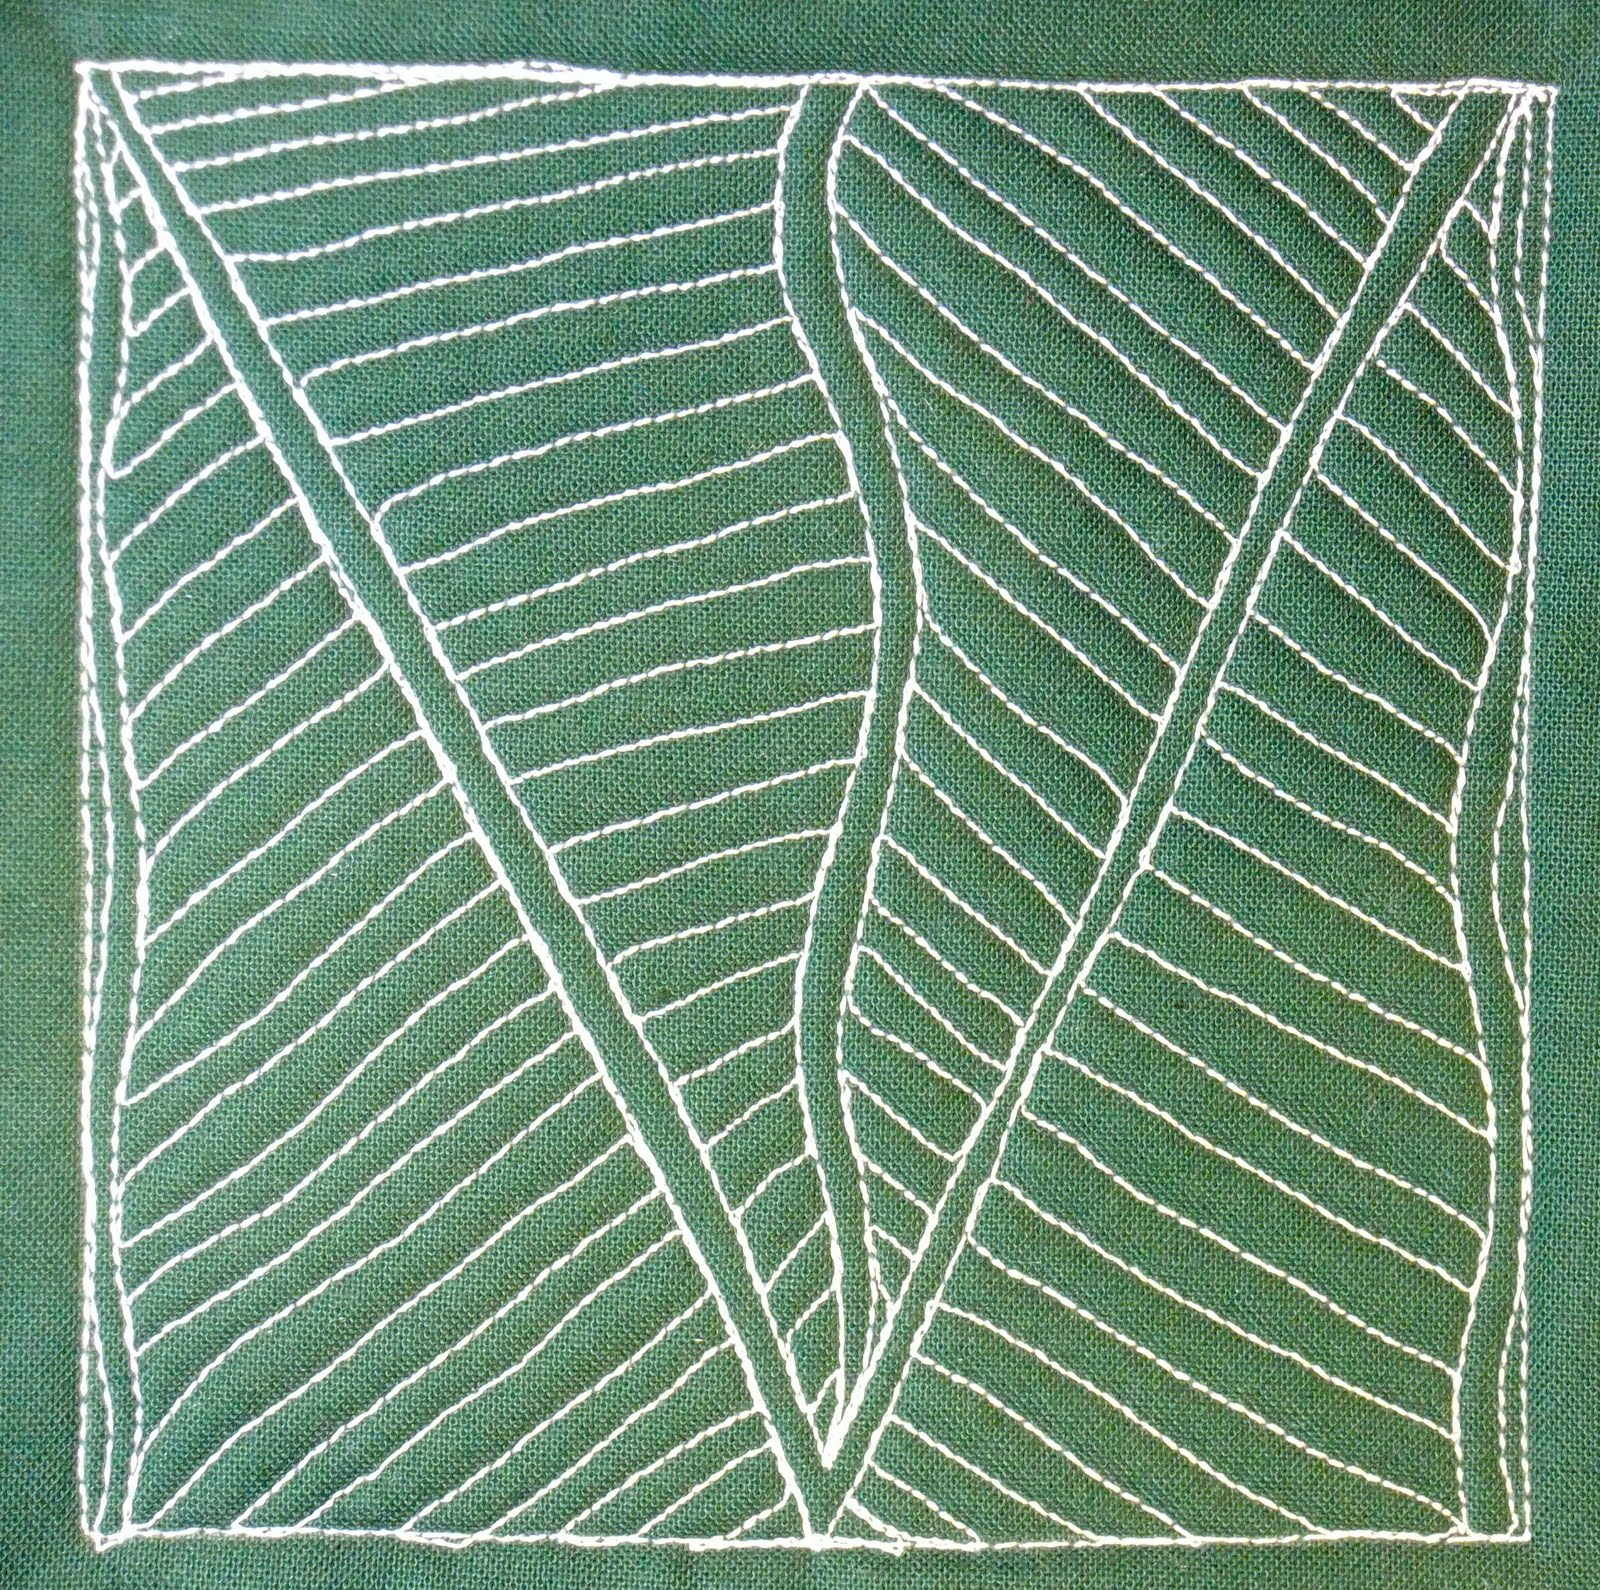 Free Motion Quilting Patterns Leaves : The Free Motion Quilting Project: Day 357 - Deco Leaves